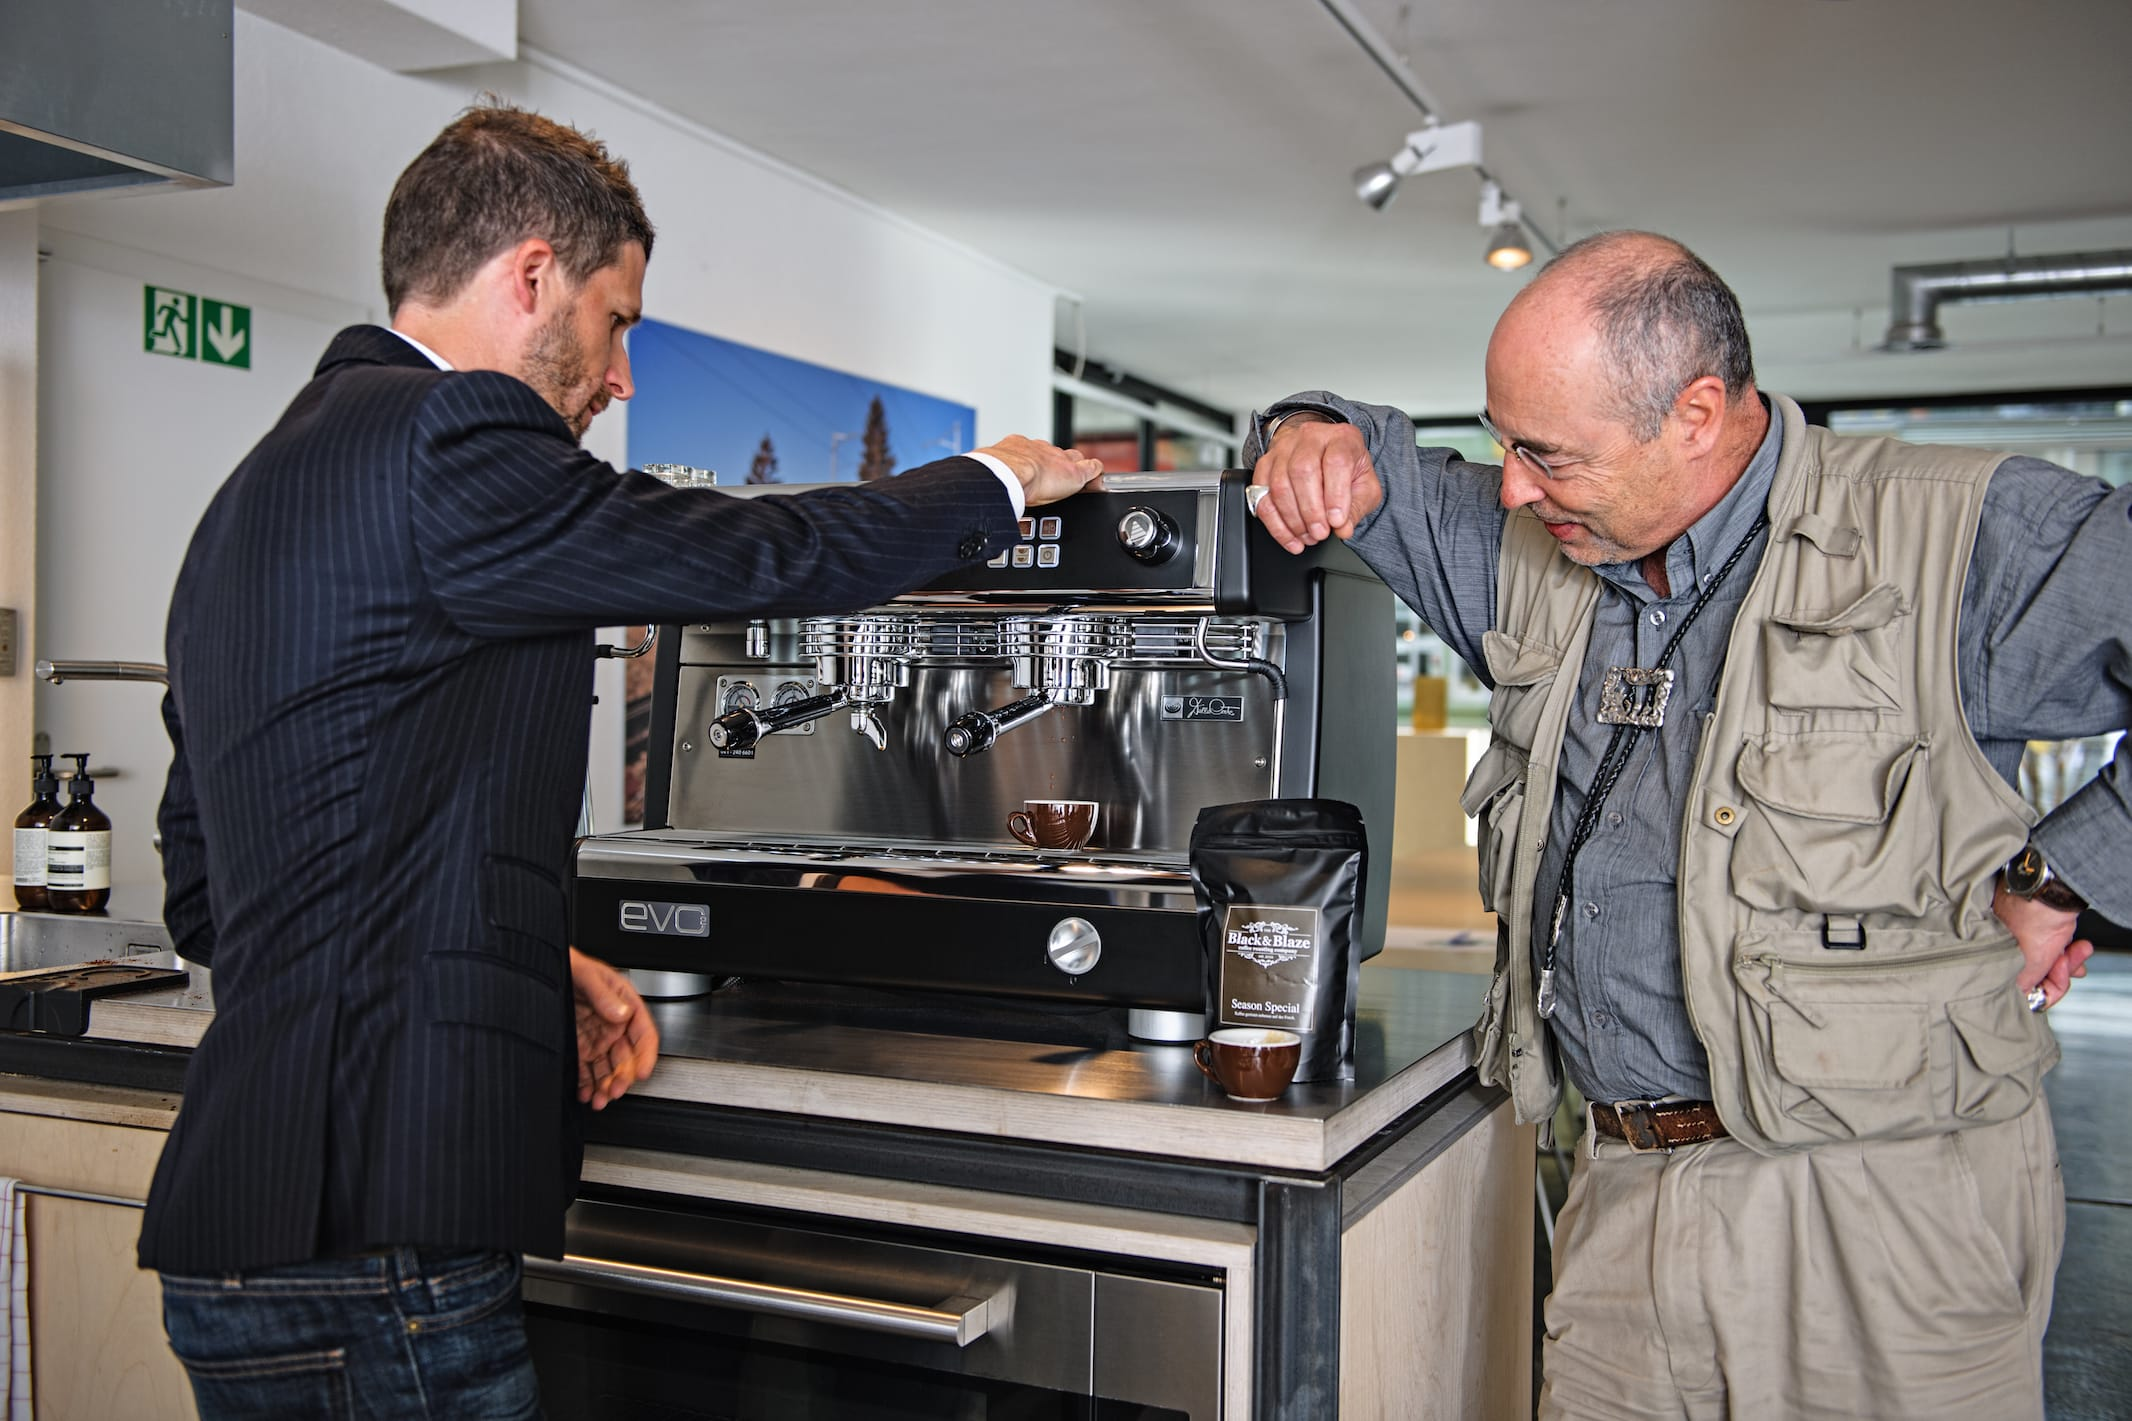 beat-weinmann-and-ludwig-oechslin-espresso-blogpost-oct-2014-vico20141015_0017_RGB-2132px